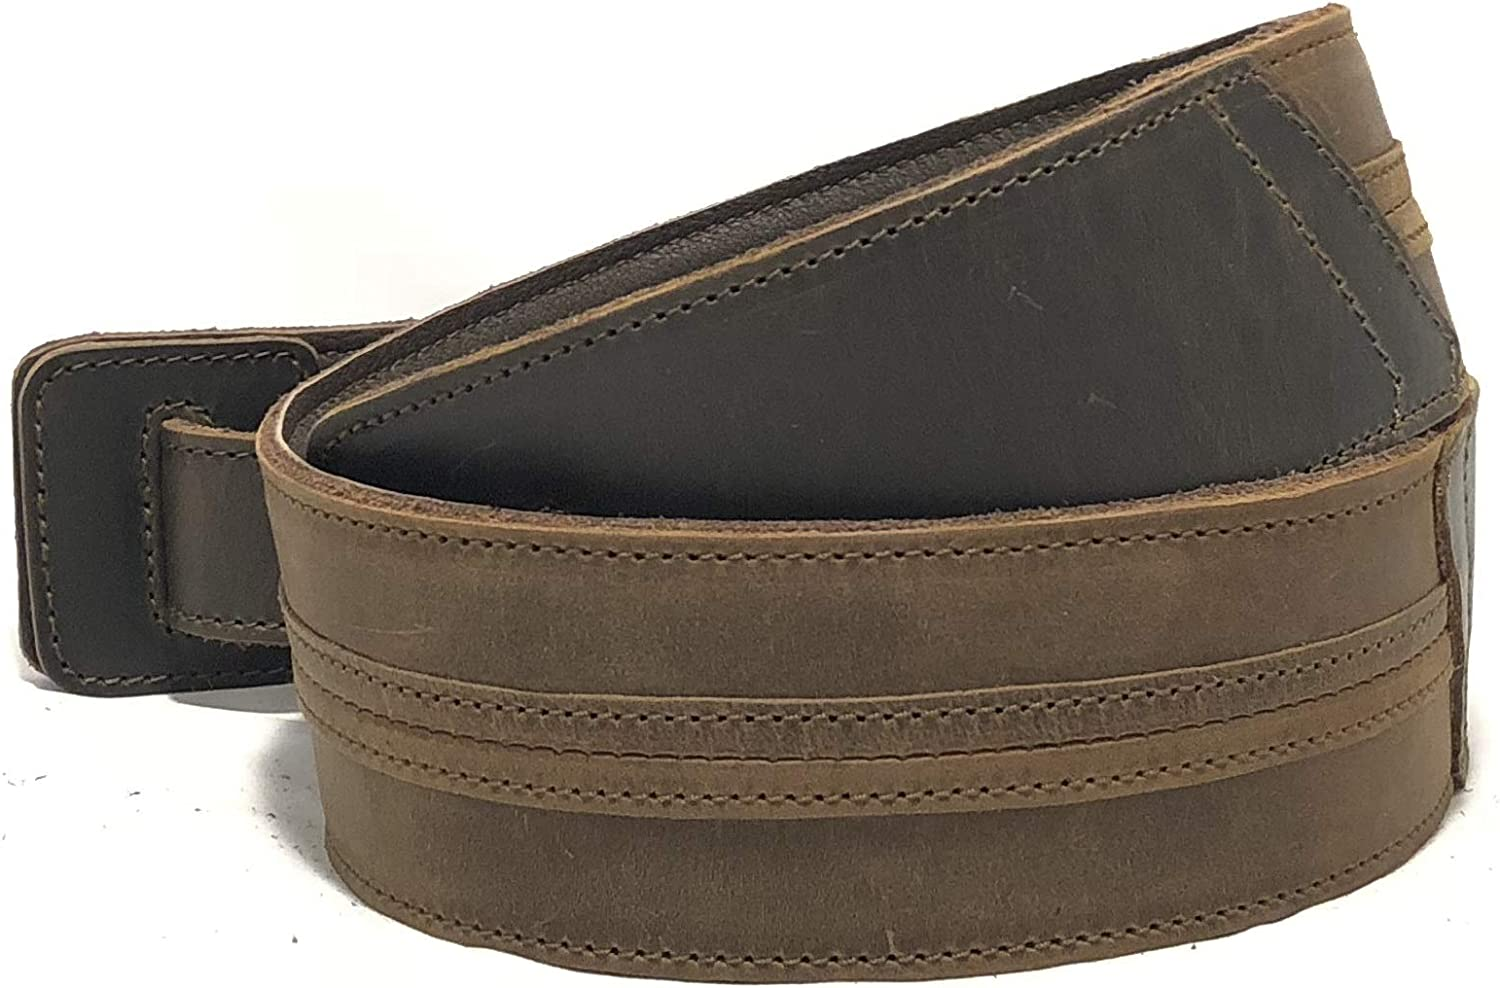 Straight Up Full Grain Padded Leather Guitar Strap - For Electric, Acoustic, and Bass Guitars by Anthology Gear (2